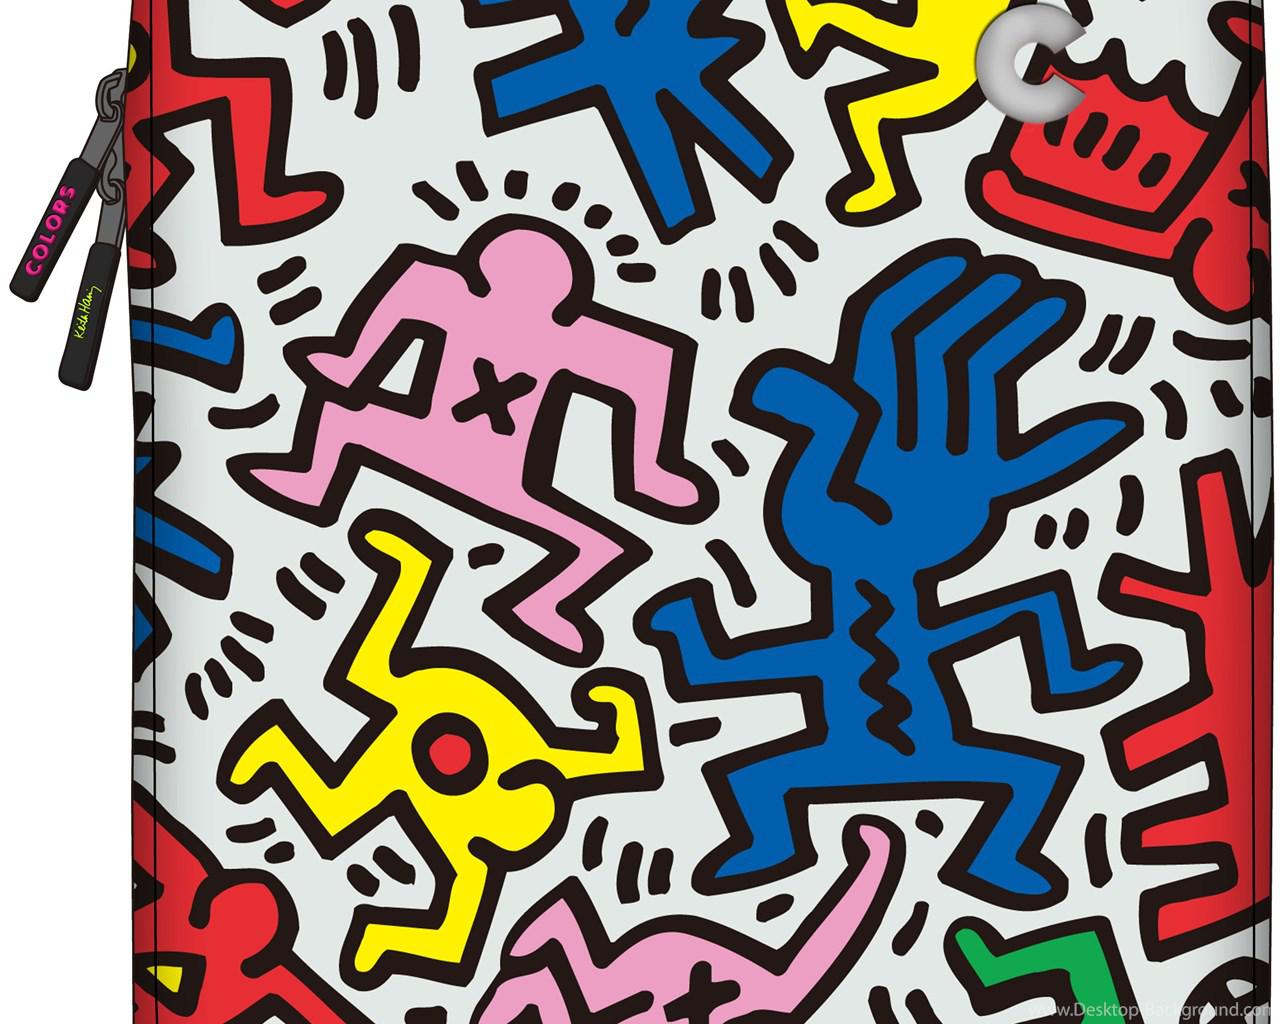 Keith Haring Wallpaper Group